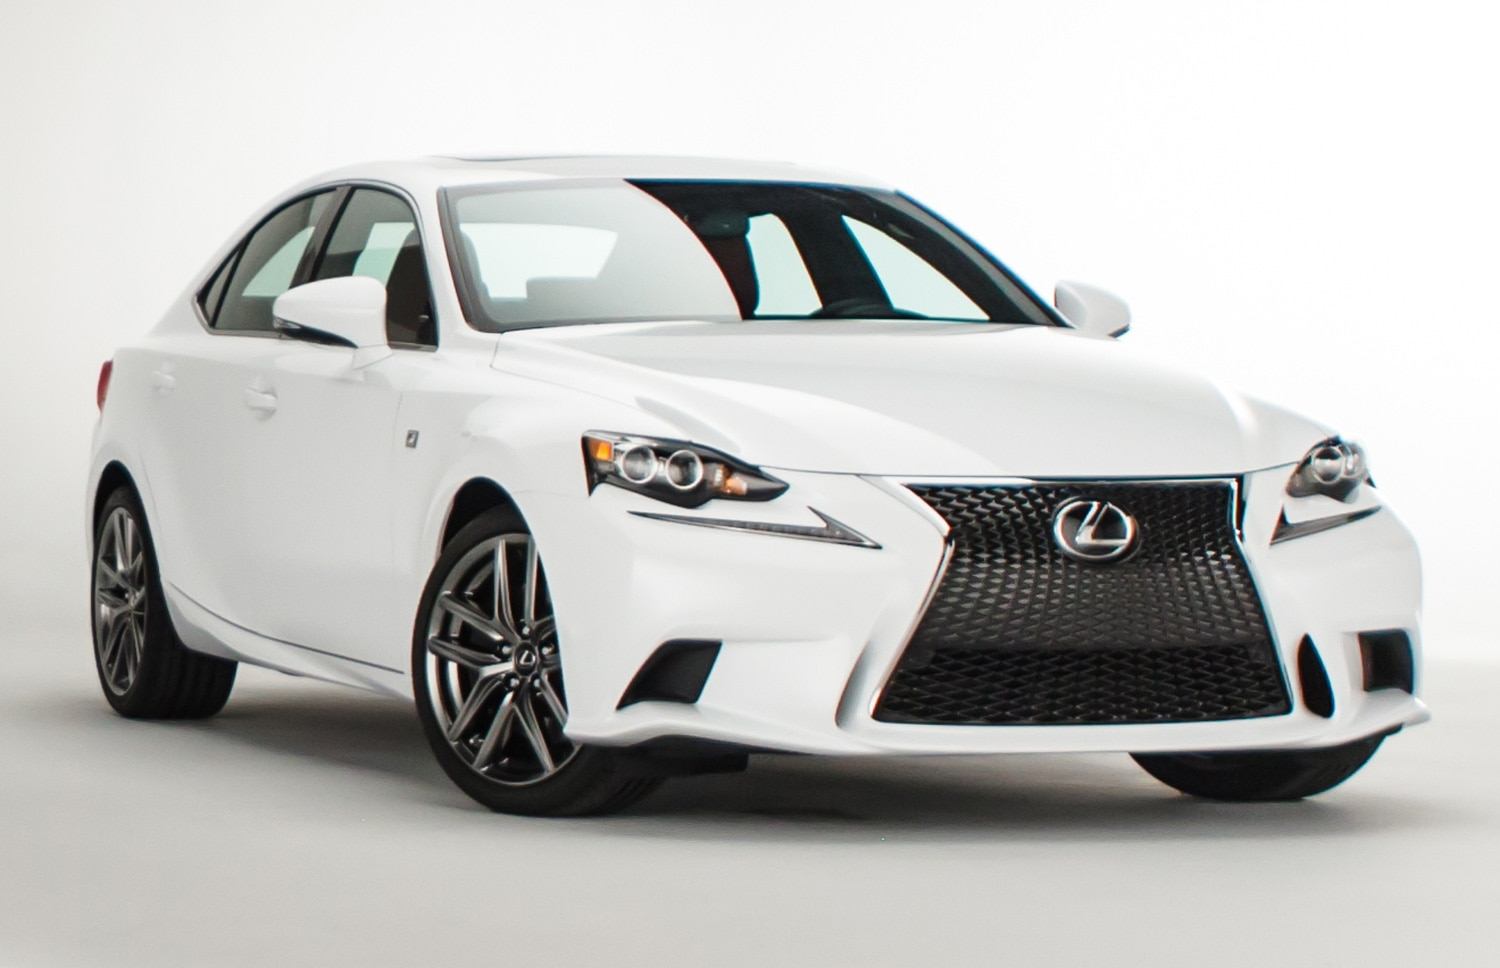 2014 Lexus IS 350 F Sport Front Three Quarters View 21